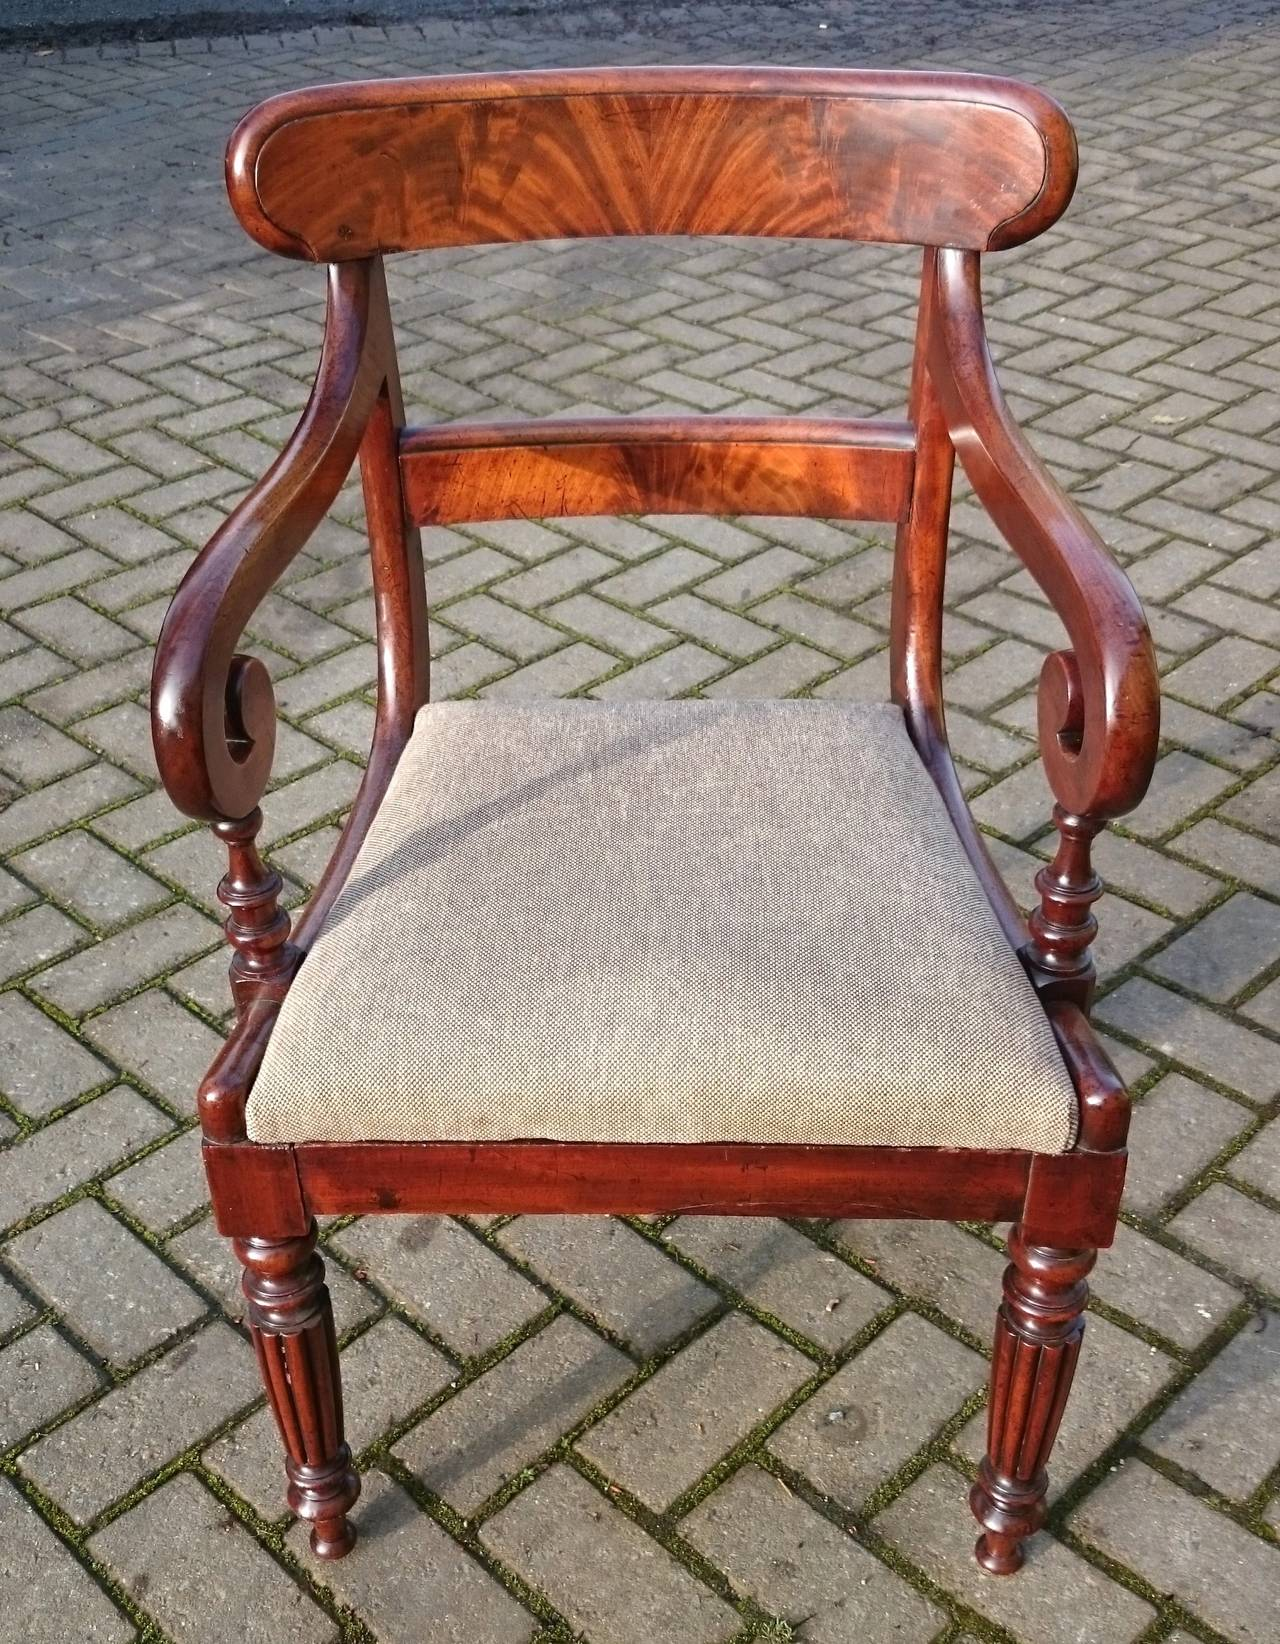 Antique Dining / Desk / Carver / Library Chair In Good Condition For Sale  In Gloucestershire - Antique Dining / Desk / Carver / Library Chair For Sale At 1stdibs